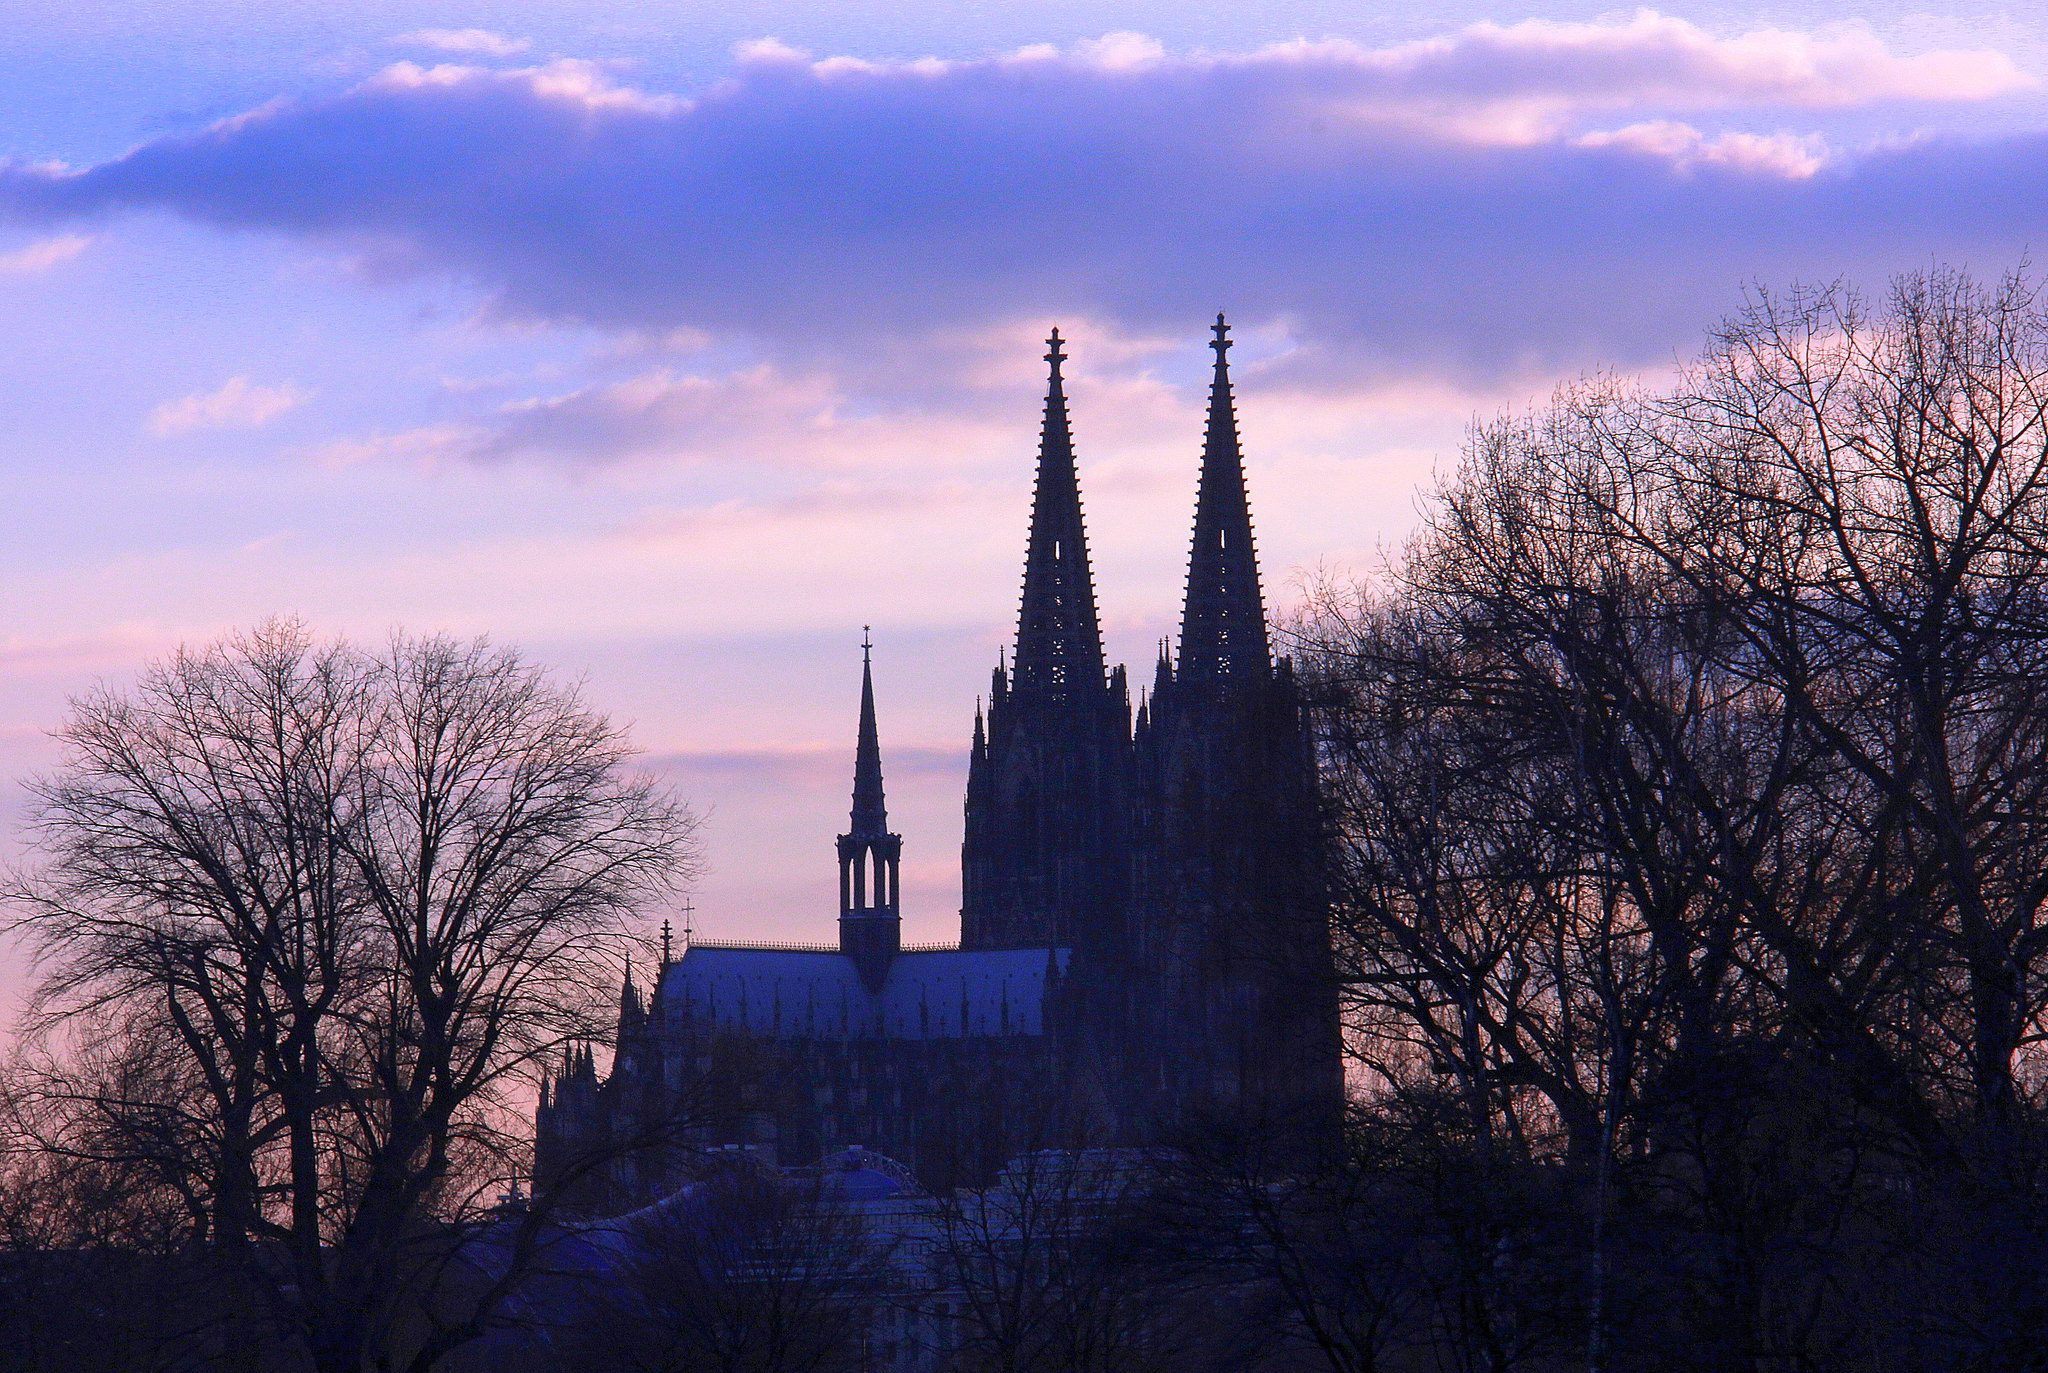 Kiln city skyline is dominated by the Cologne Cathedral